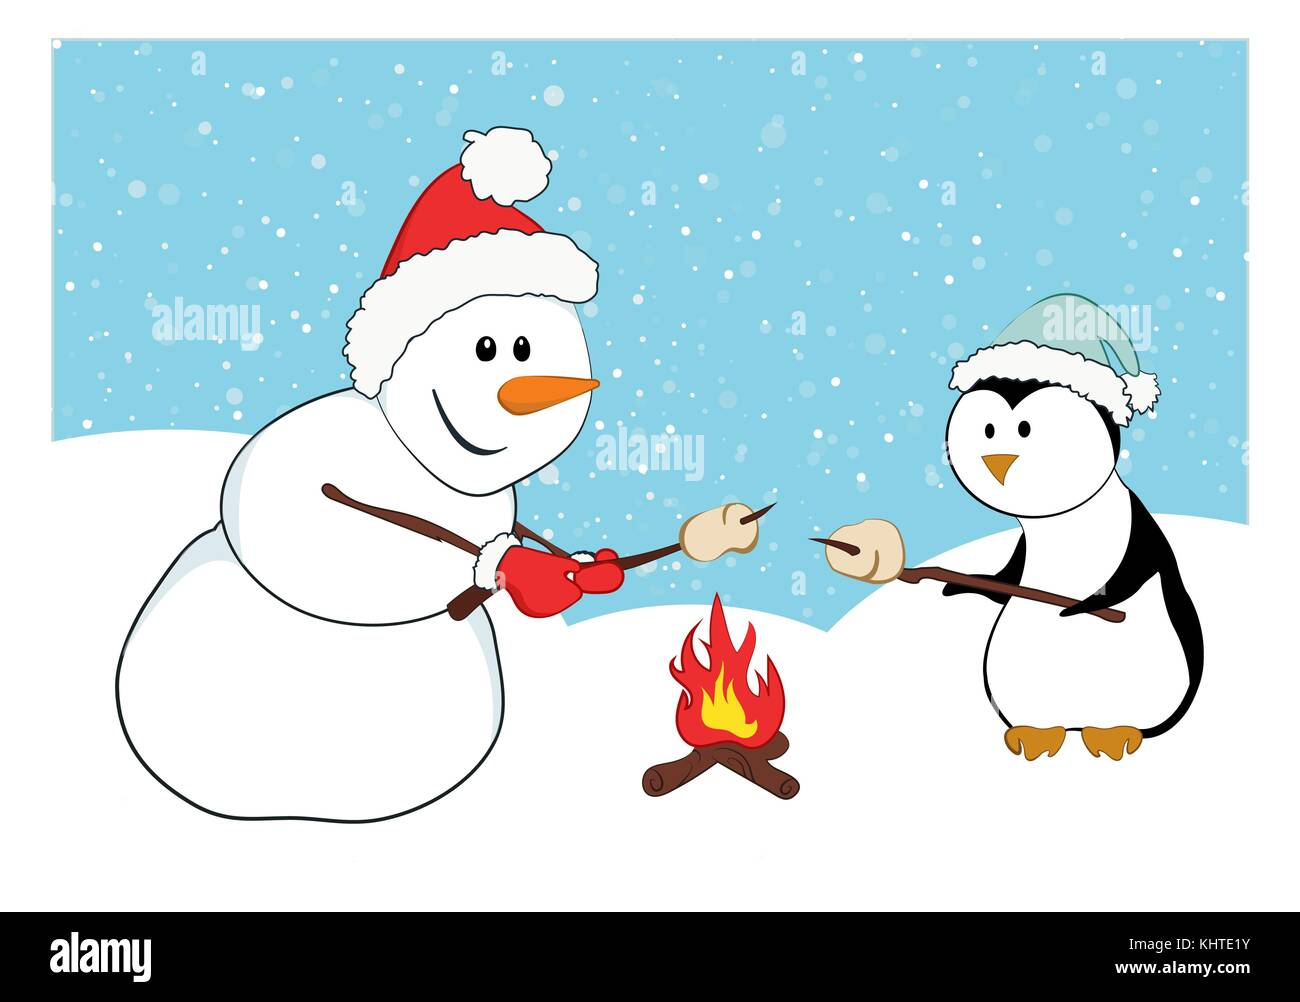 A Snowman And Penguin Roasting Marshmallows Cartoon Characters With Snow Background